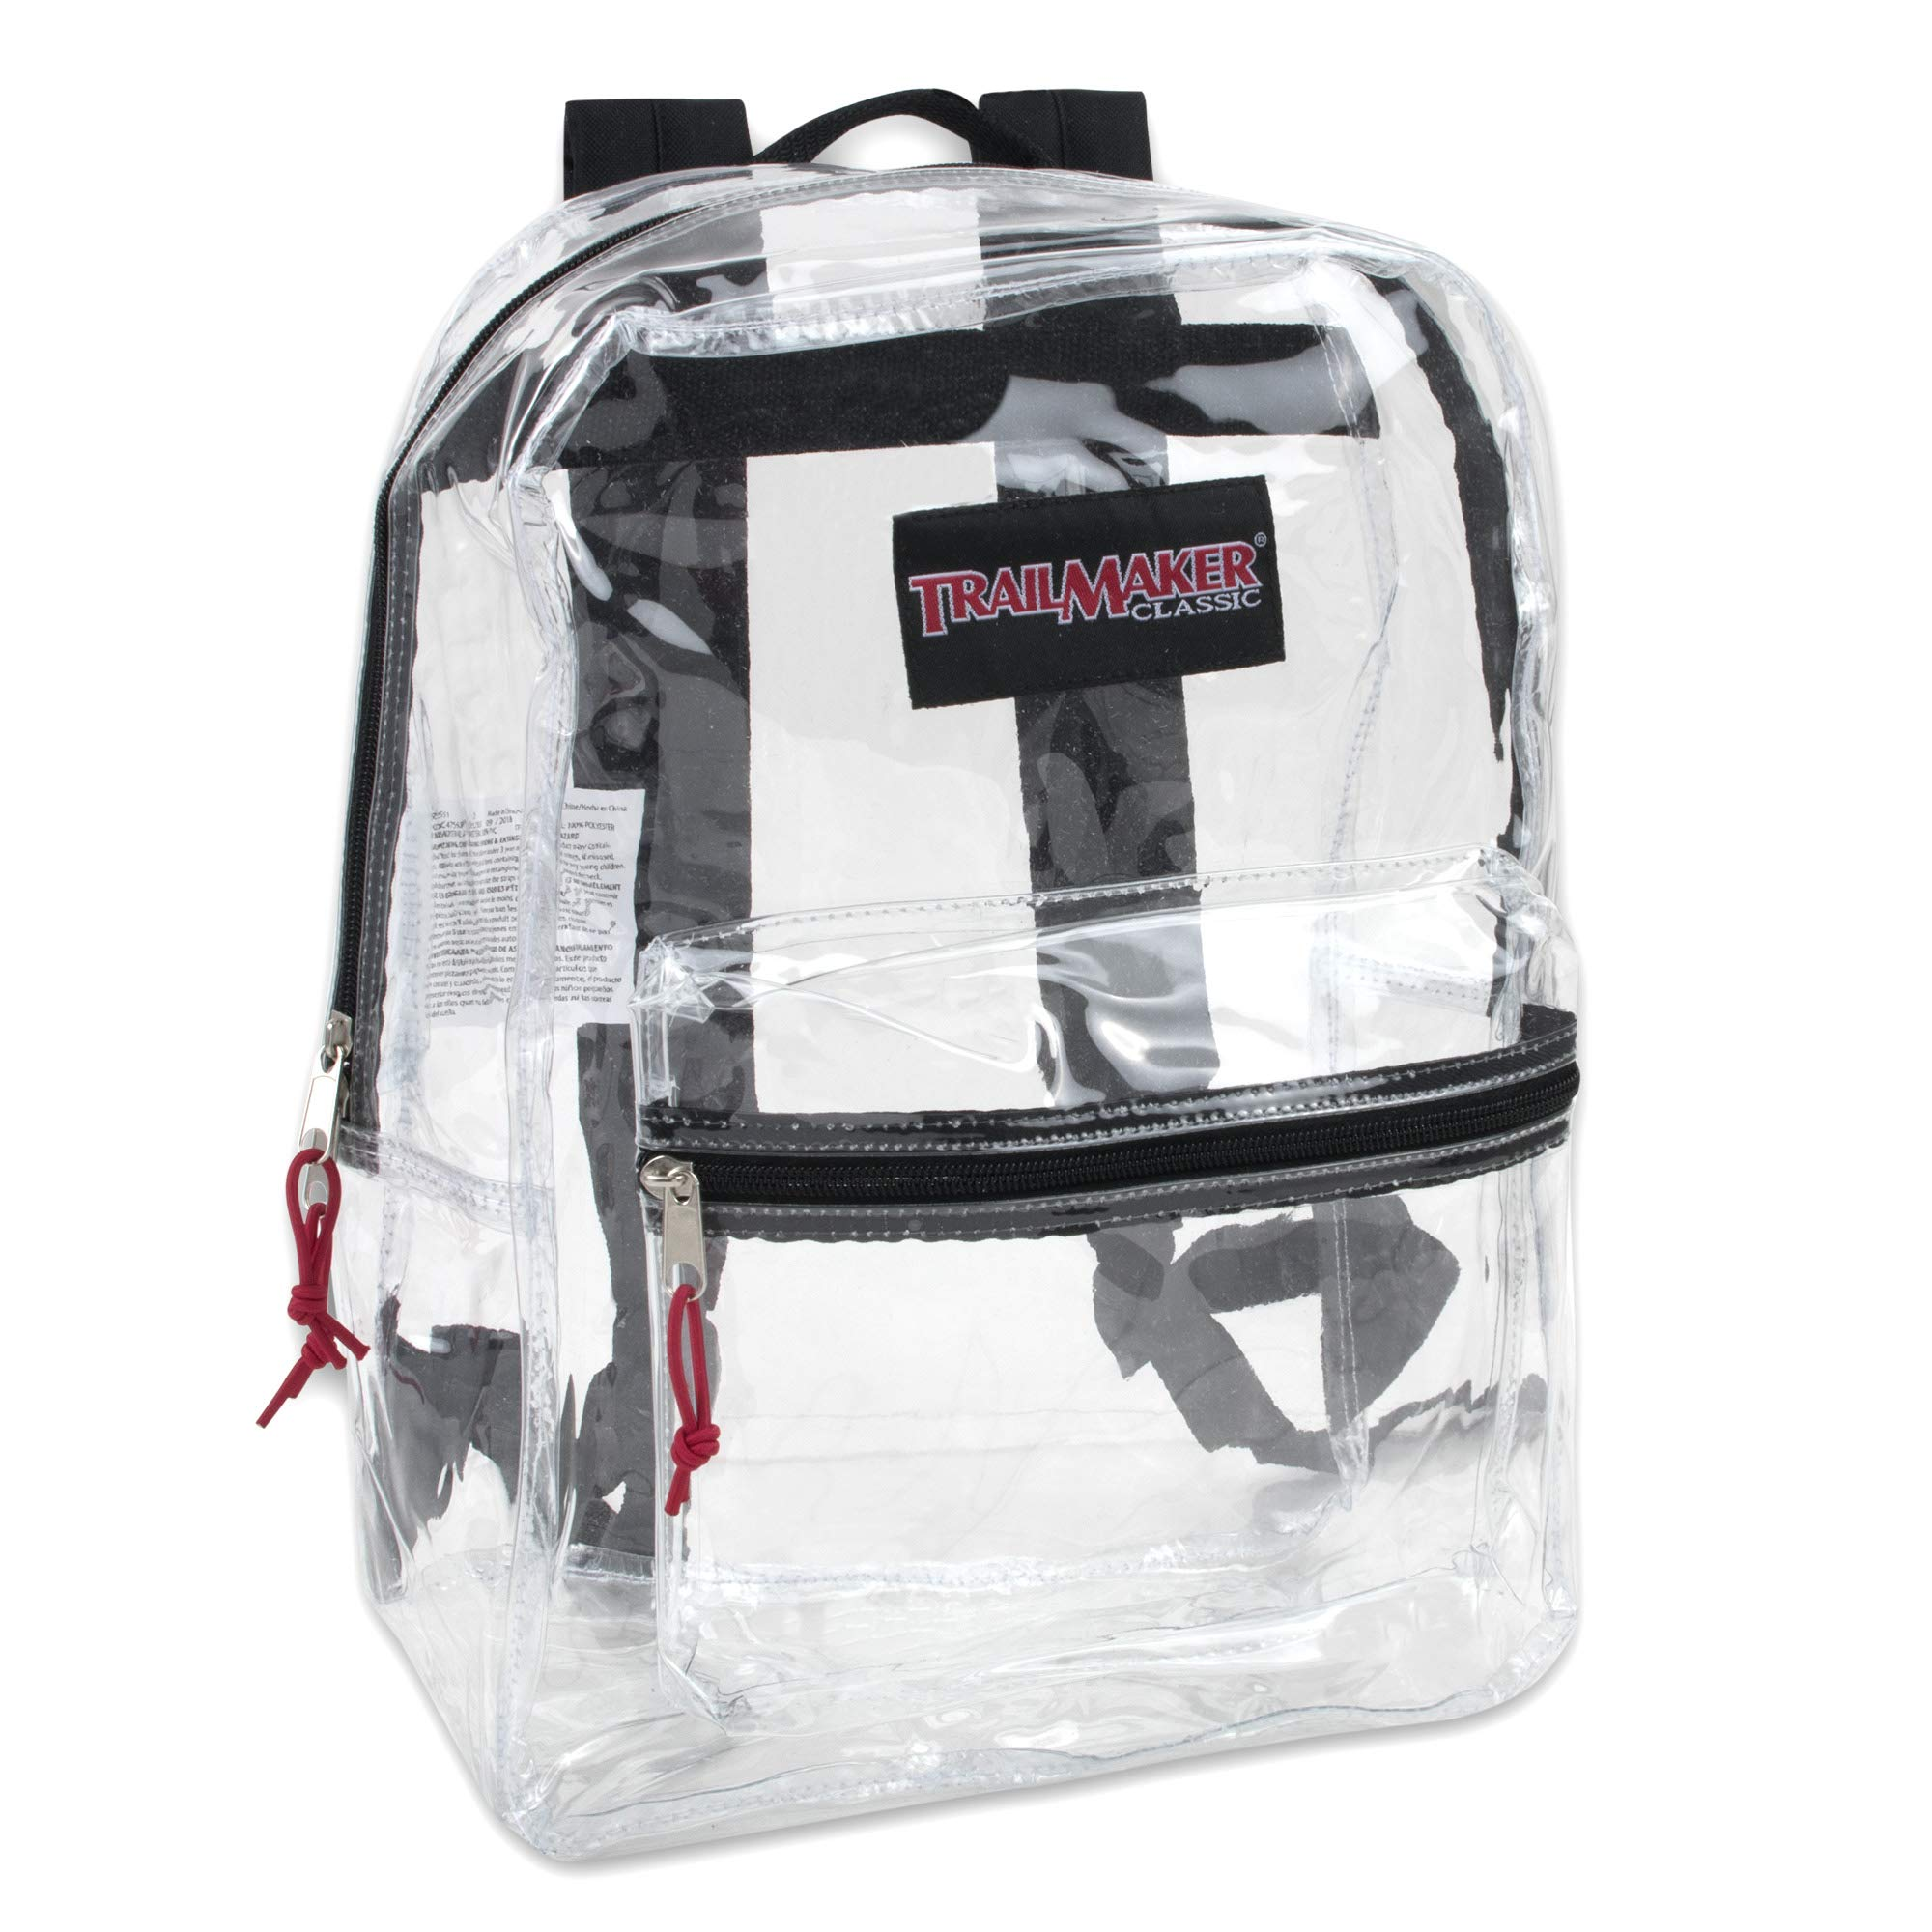 Clear Backpack With Reinforced Straps For School, Security, Sporting Events (Black) by Trail maker